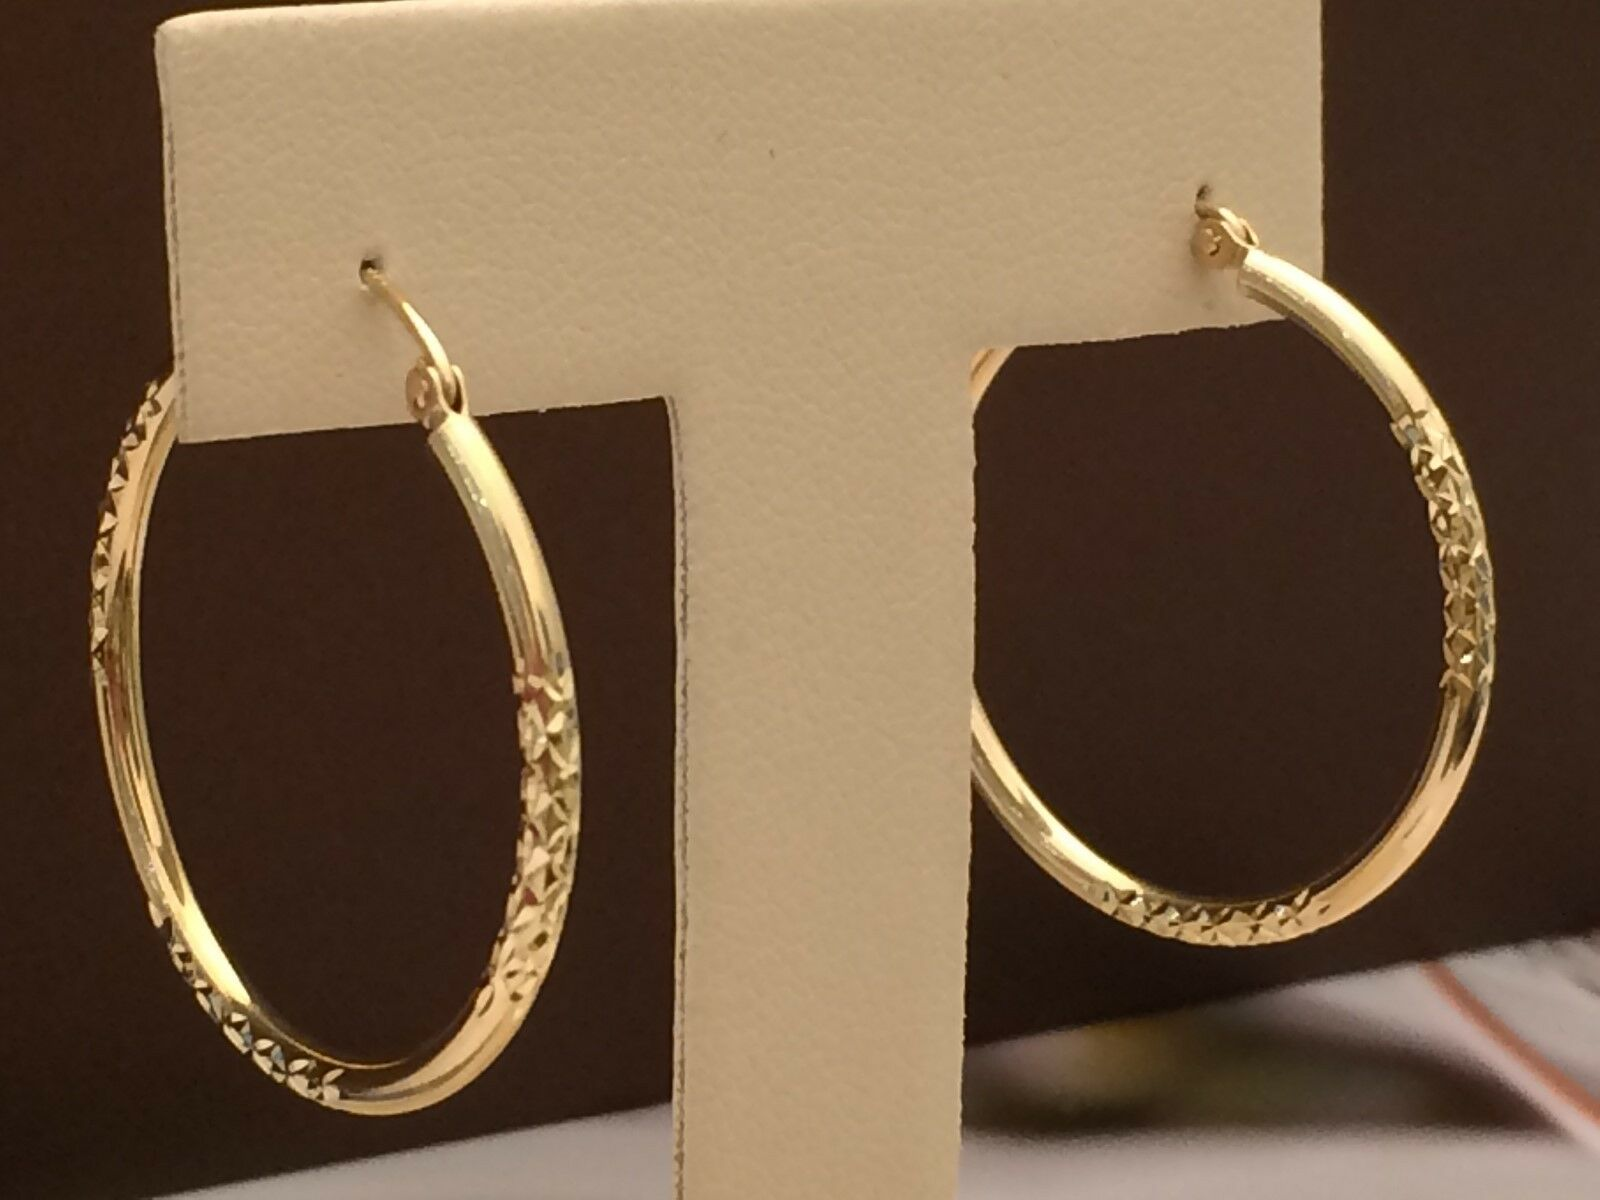 product locke diamond earrings large hoop elizabeth